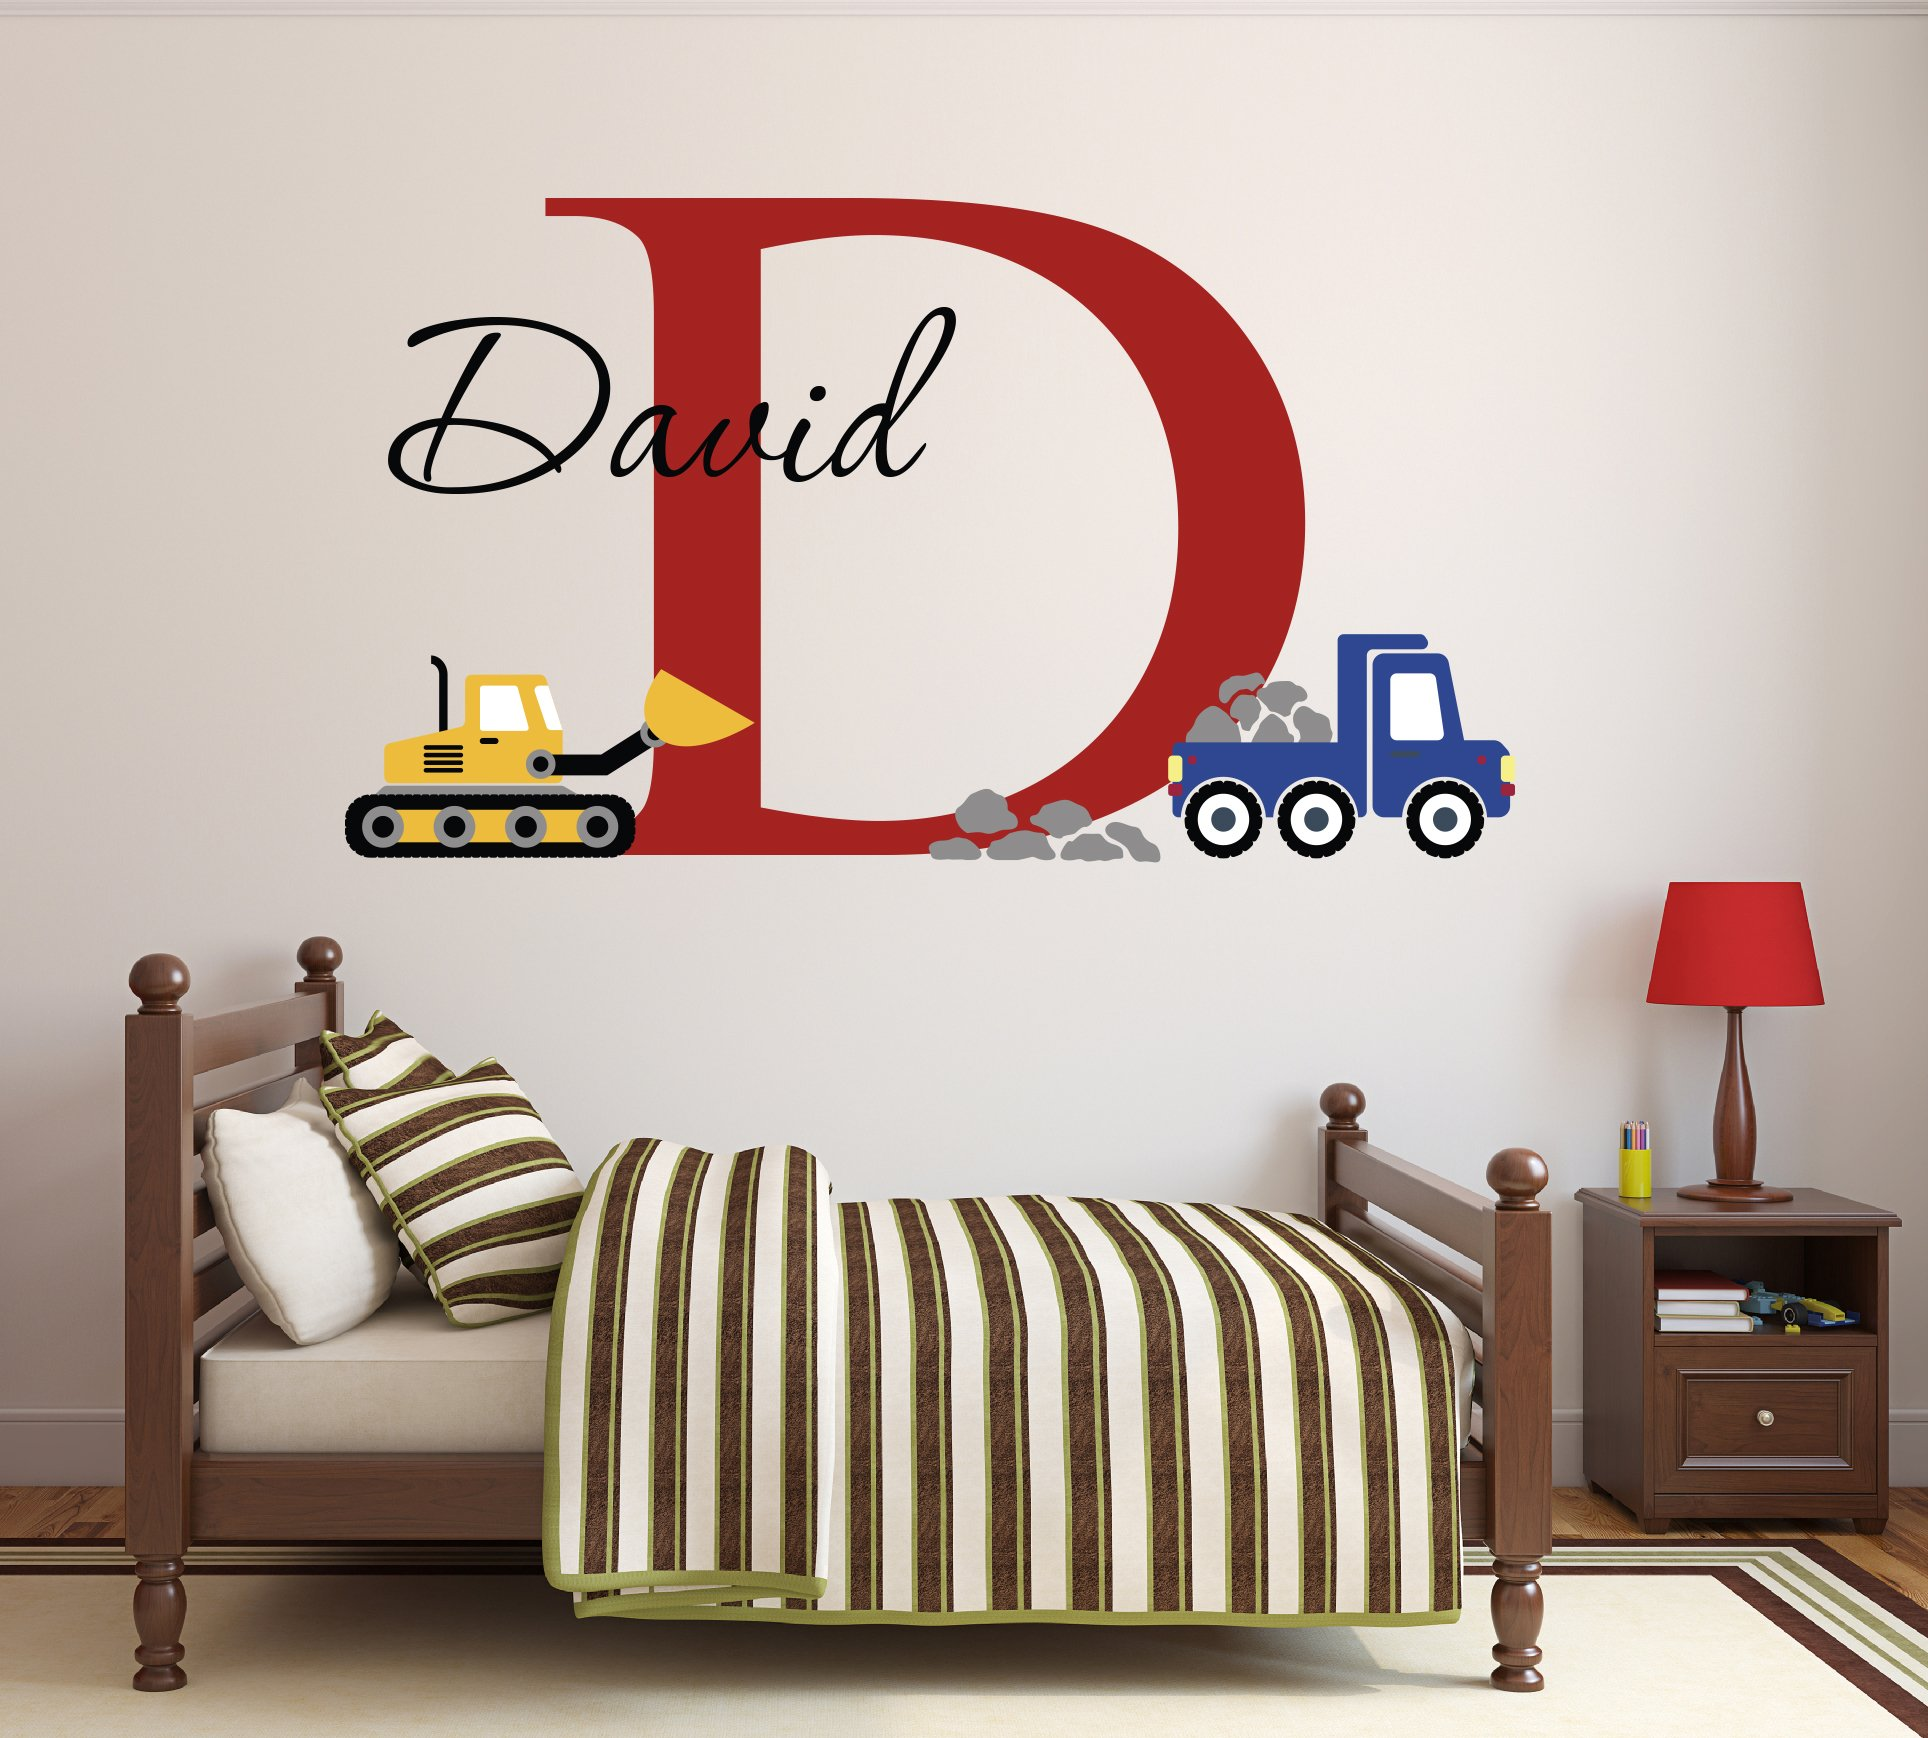 Custom Construction Truck Name Wall Decal for Boys Nursery Baby Room Art Decor Vinyl Sticker (34''W x 22''H) by Lovely Decals World LLC